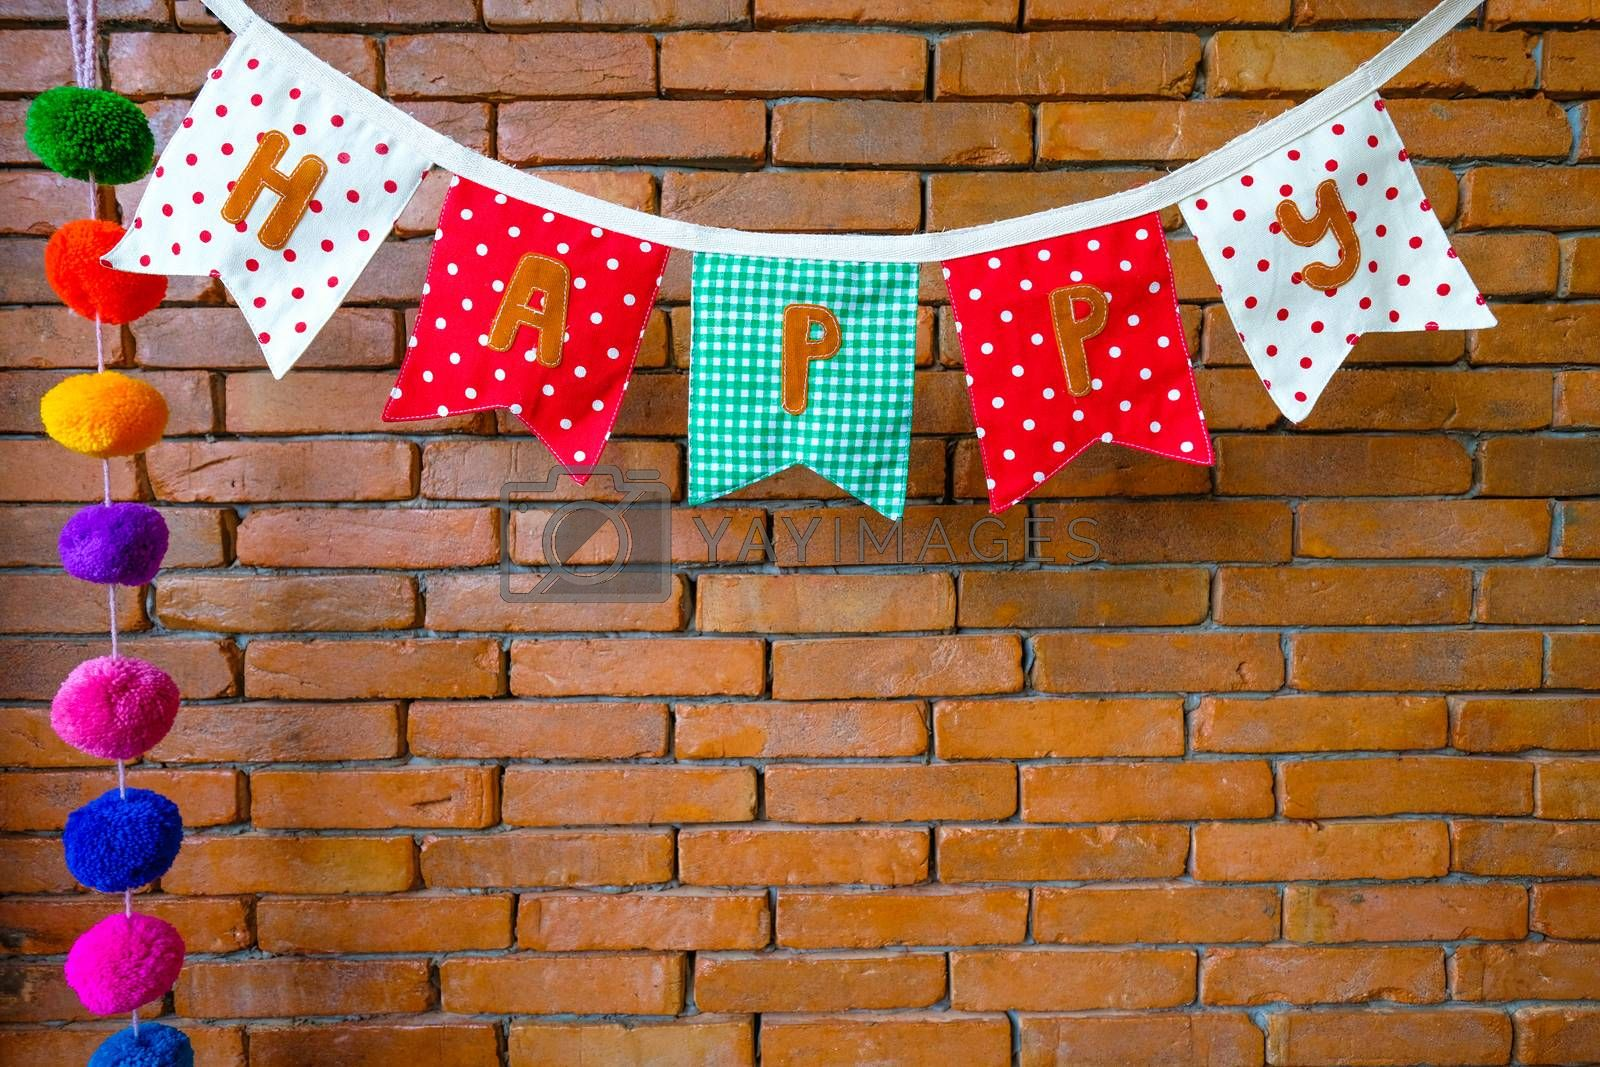 a cloth hanger on a brick wall by Nawoot